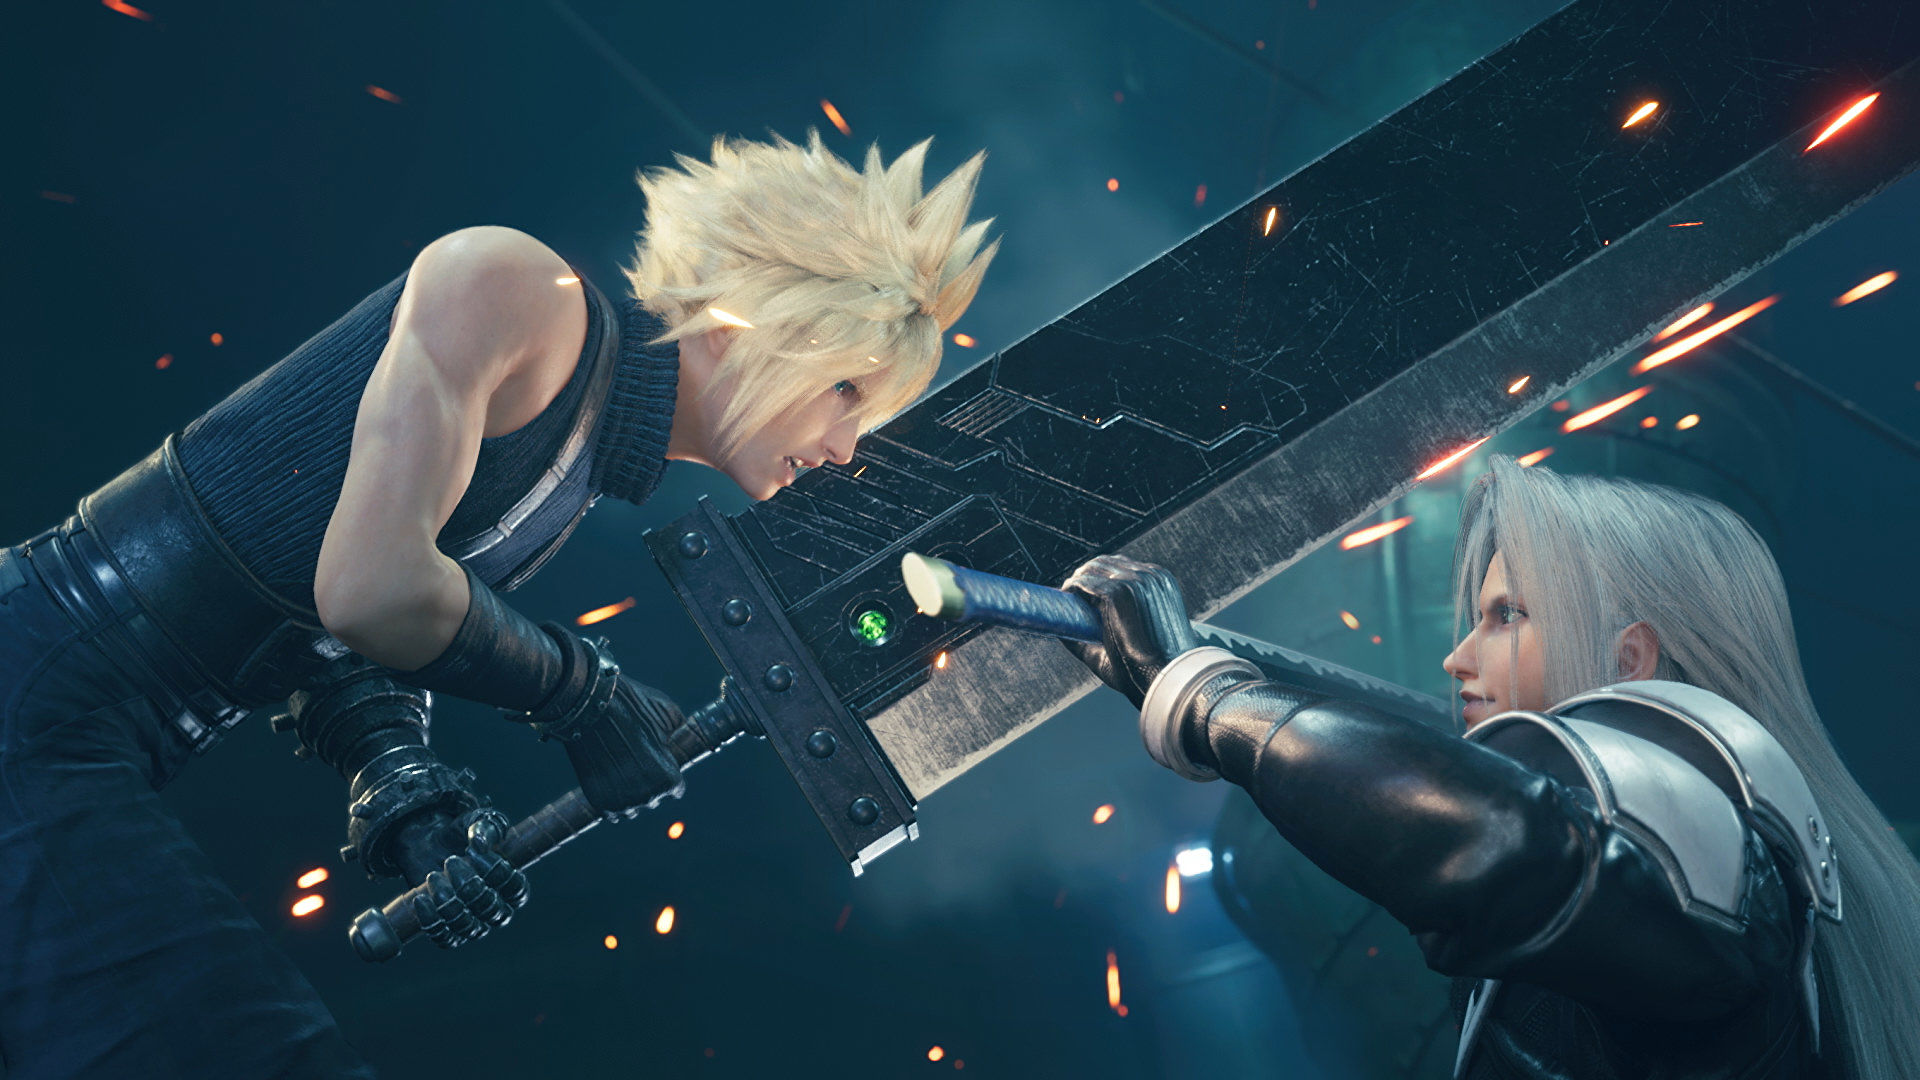 Square Enix deny they're considering selling